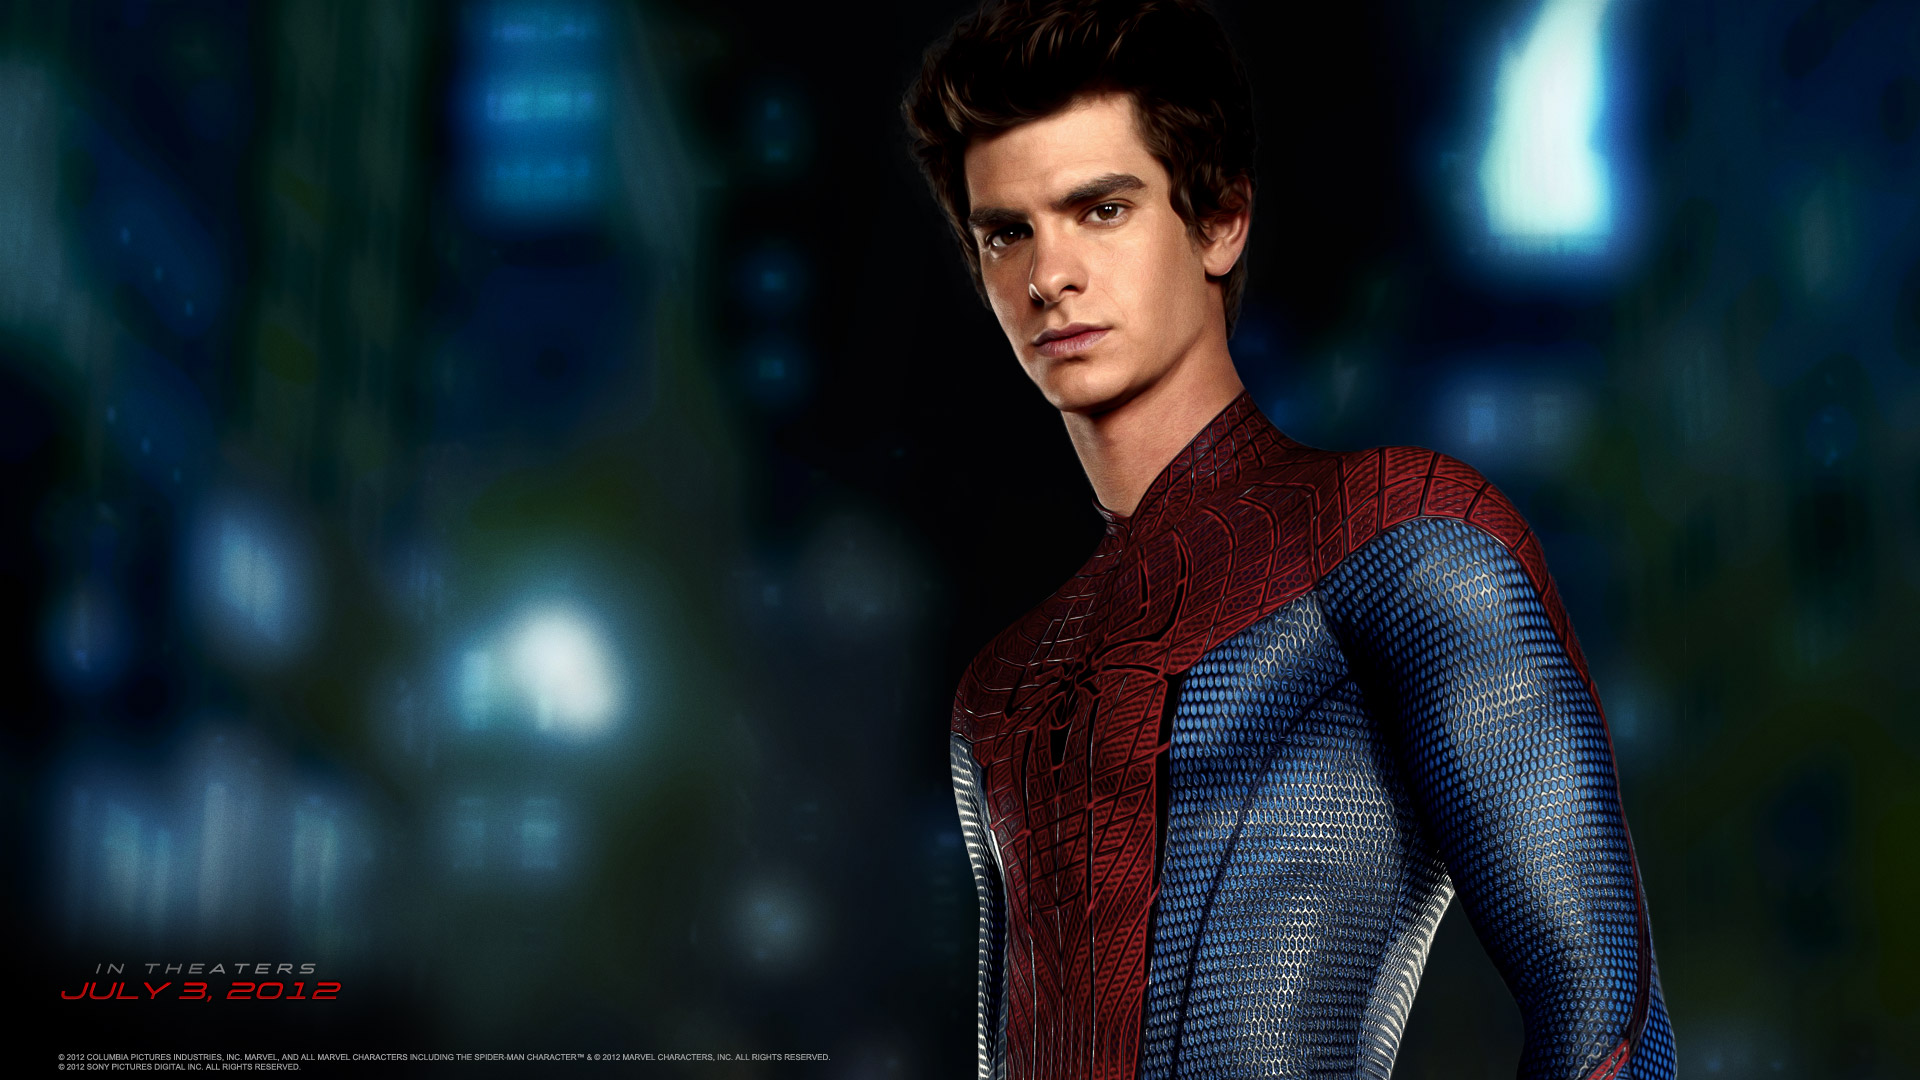 Andrew Garfield as Peter Parker/Spider-Man in The Amazing Spider-Man (2012)